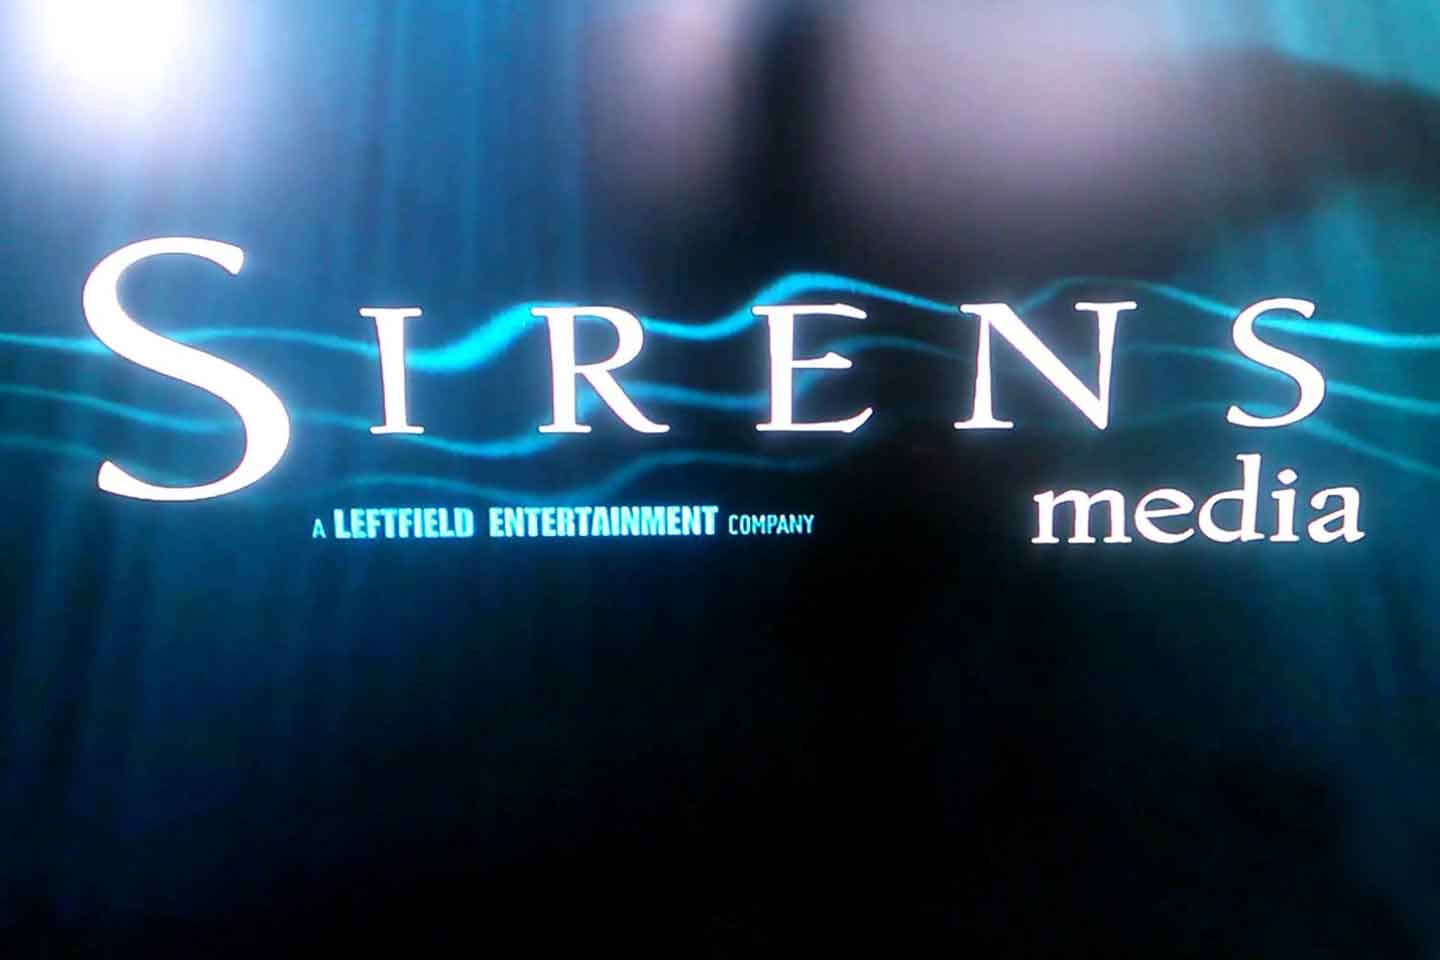 Sirens Media: Ellusionist TV Project